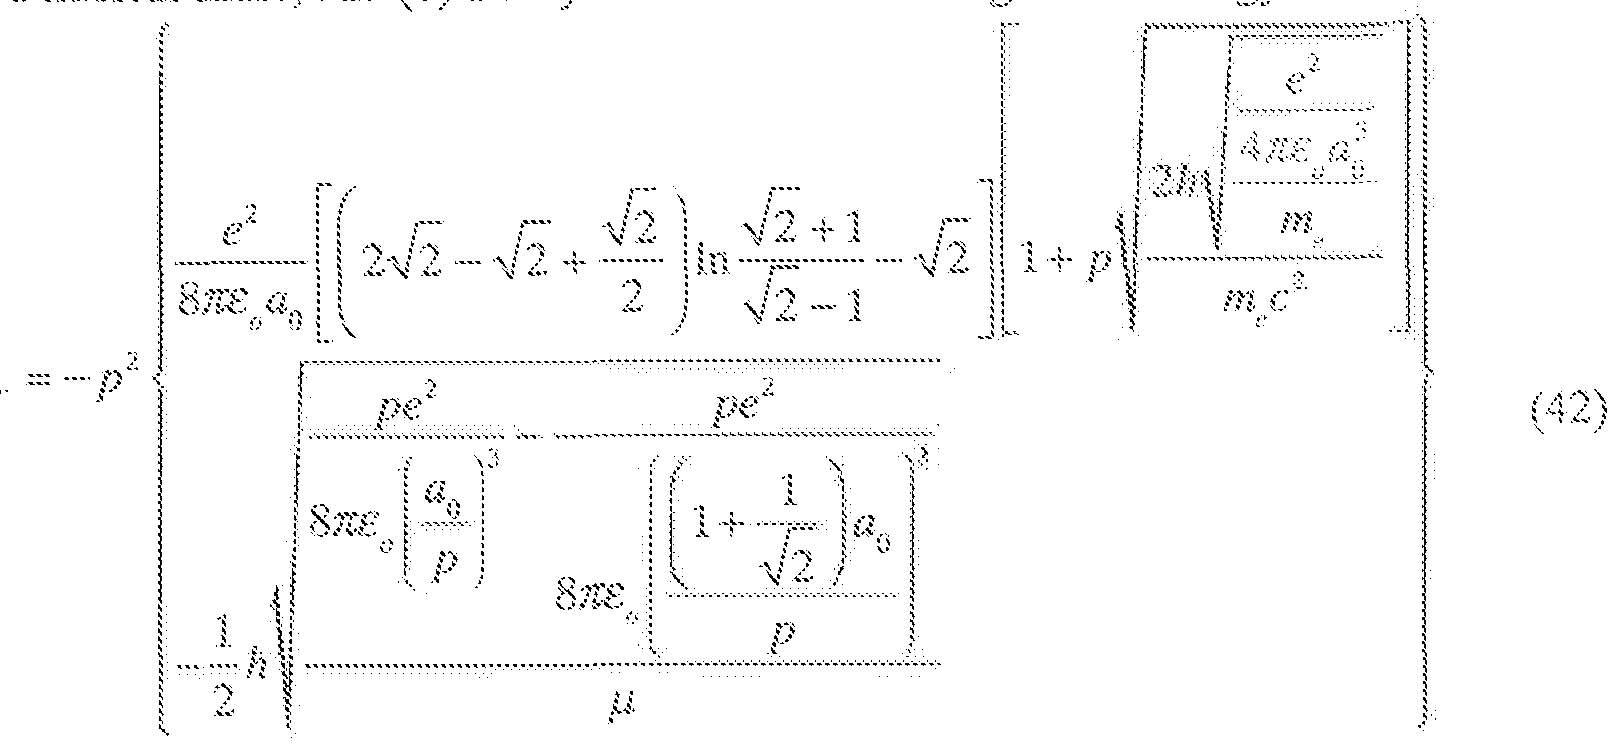 Wo2015184252a1 Electrical Power Generation Systems And Methods Circuits With Suns Delayed Shift Hot Oil Shuttle Sun Hydraulics Figure Imgf000041 0002